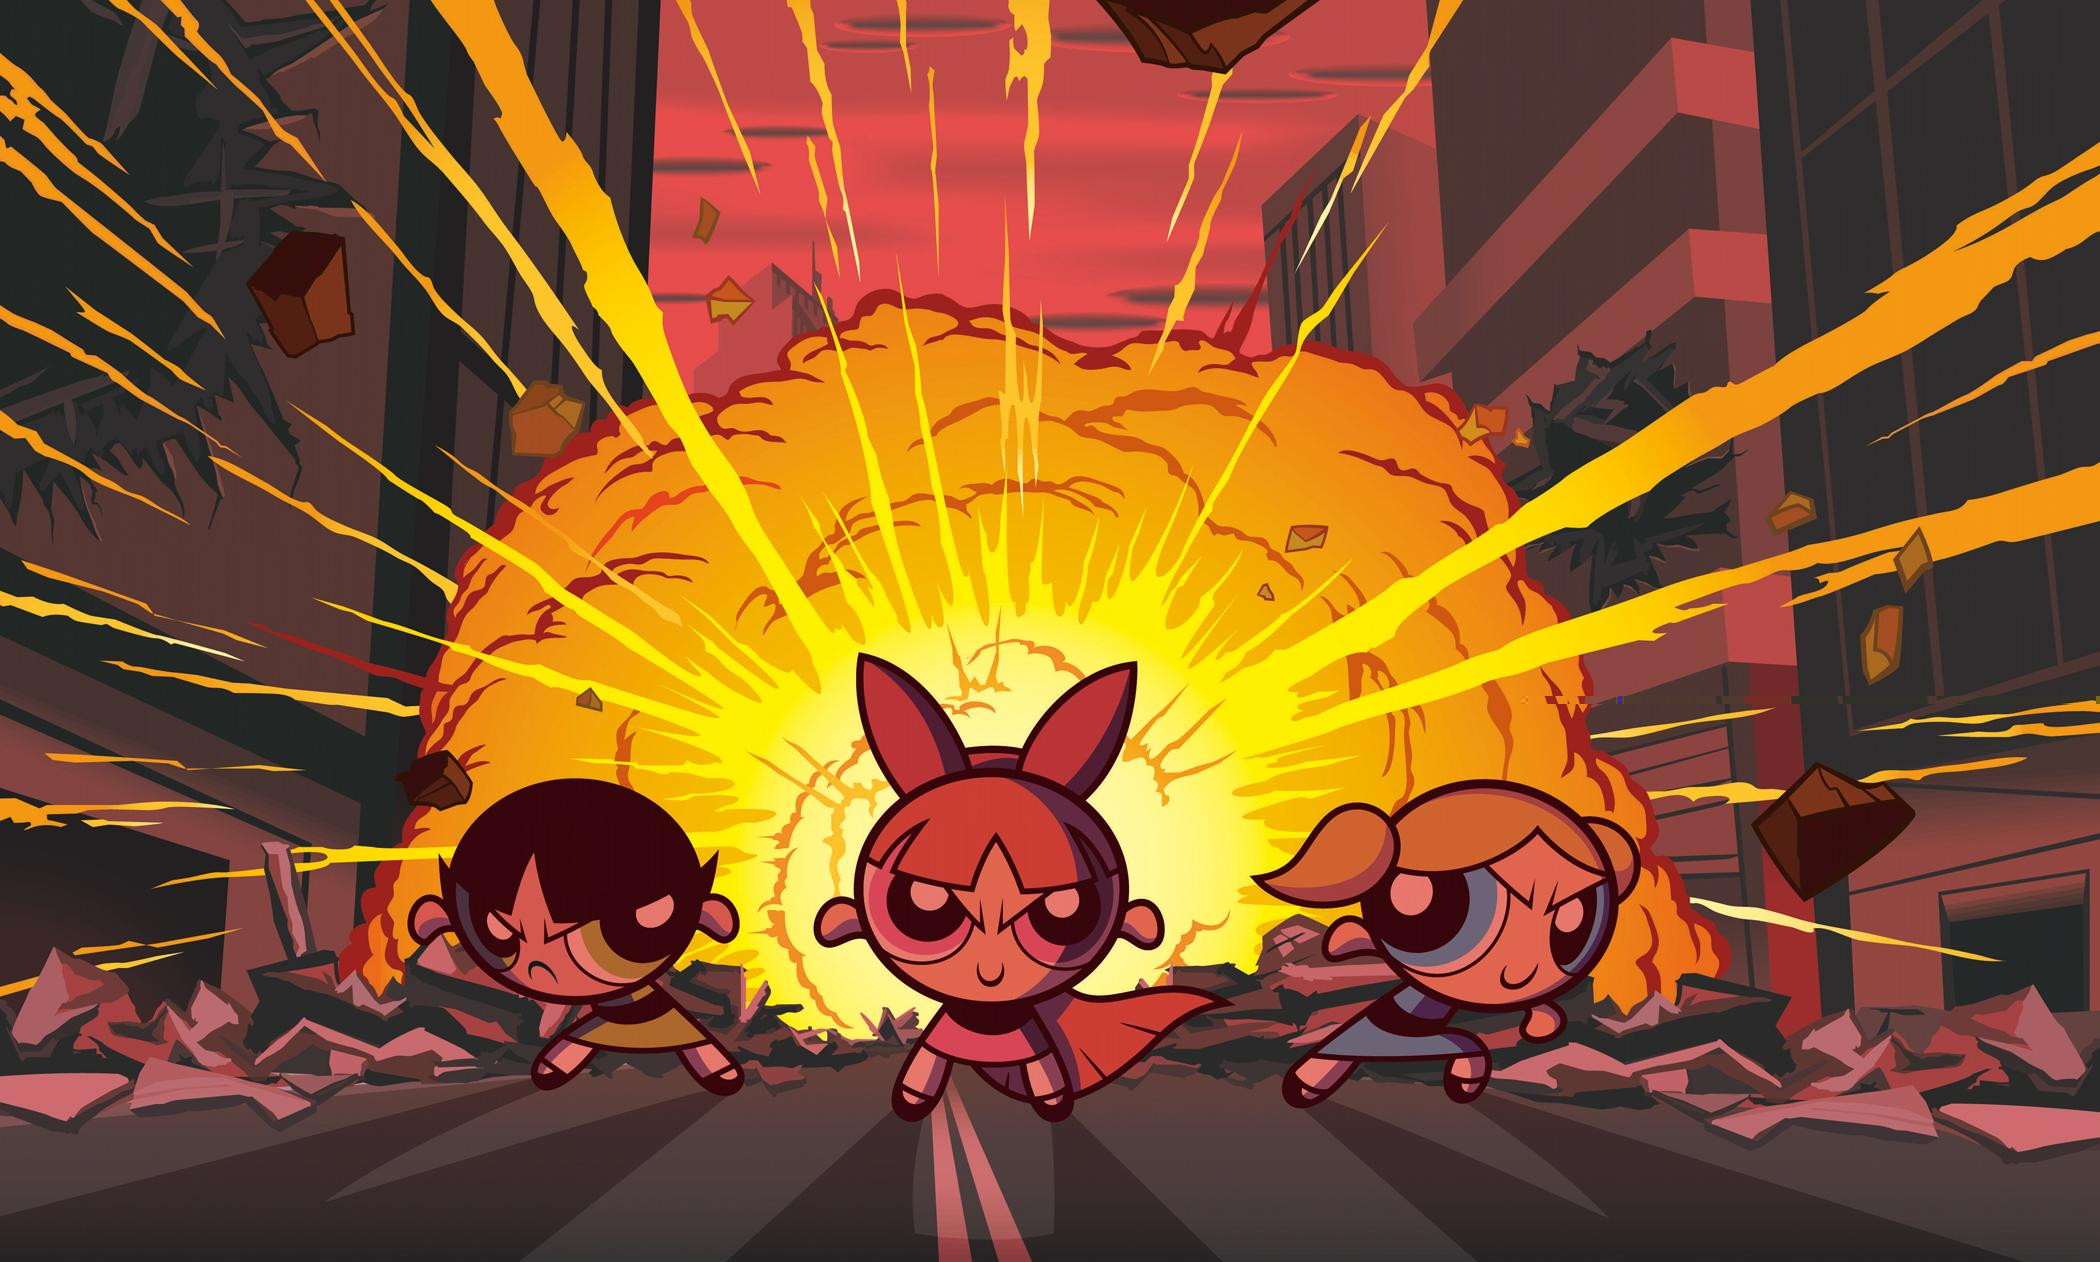 The Powerpuff Girls HD Wallpaper | Background Image | 2100x1262 | ID:76267 - Wallpaper Abyss